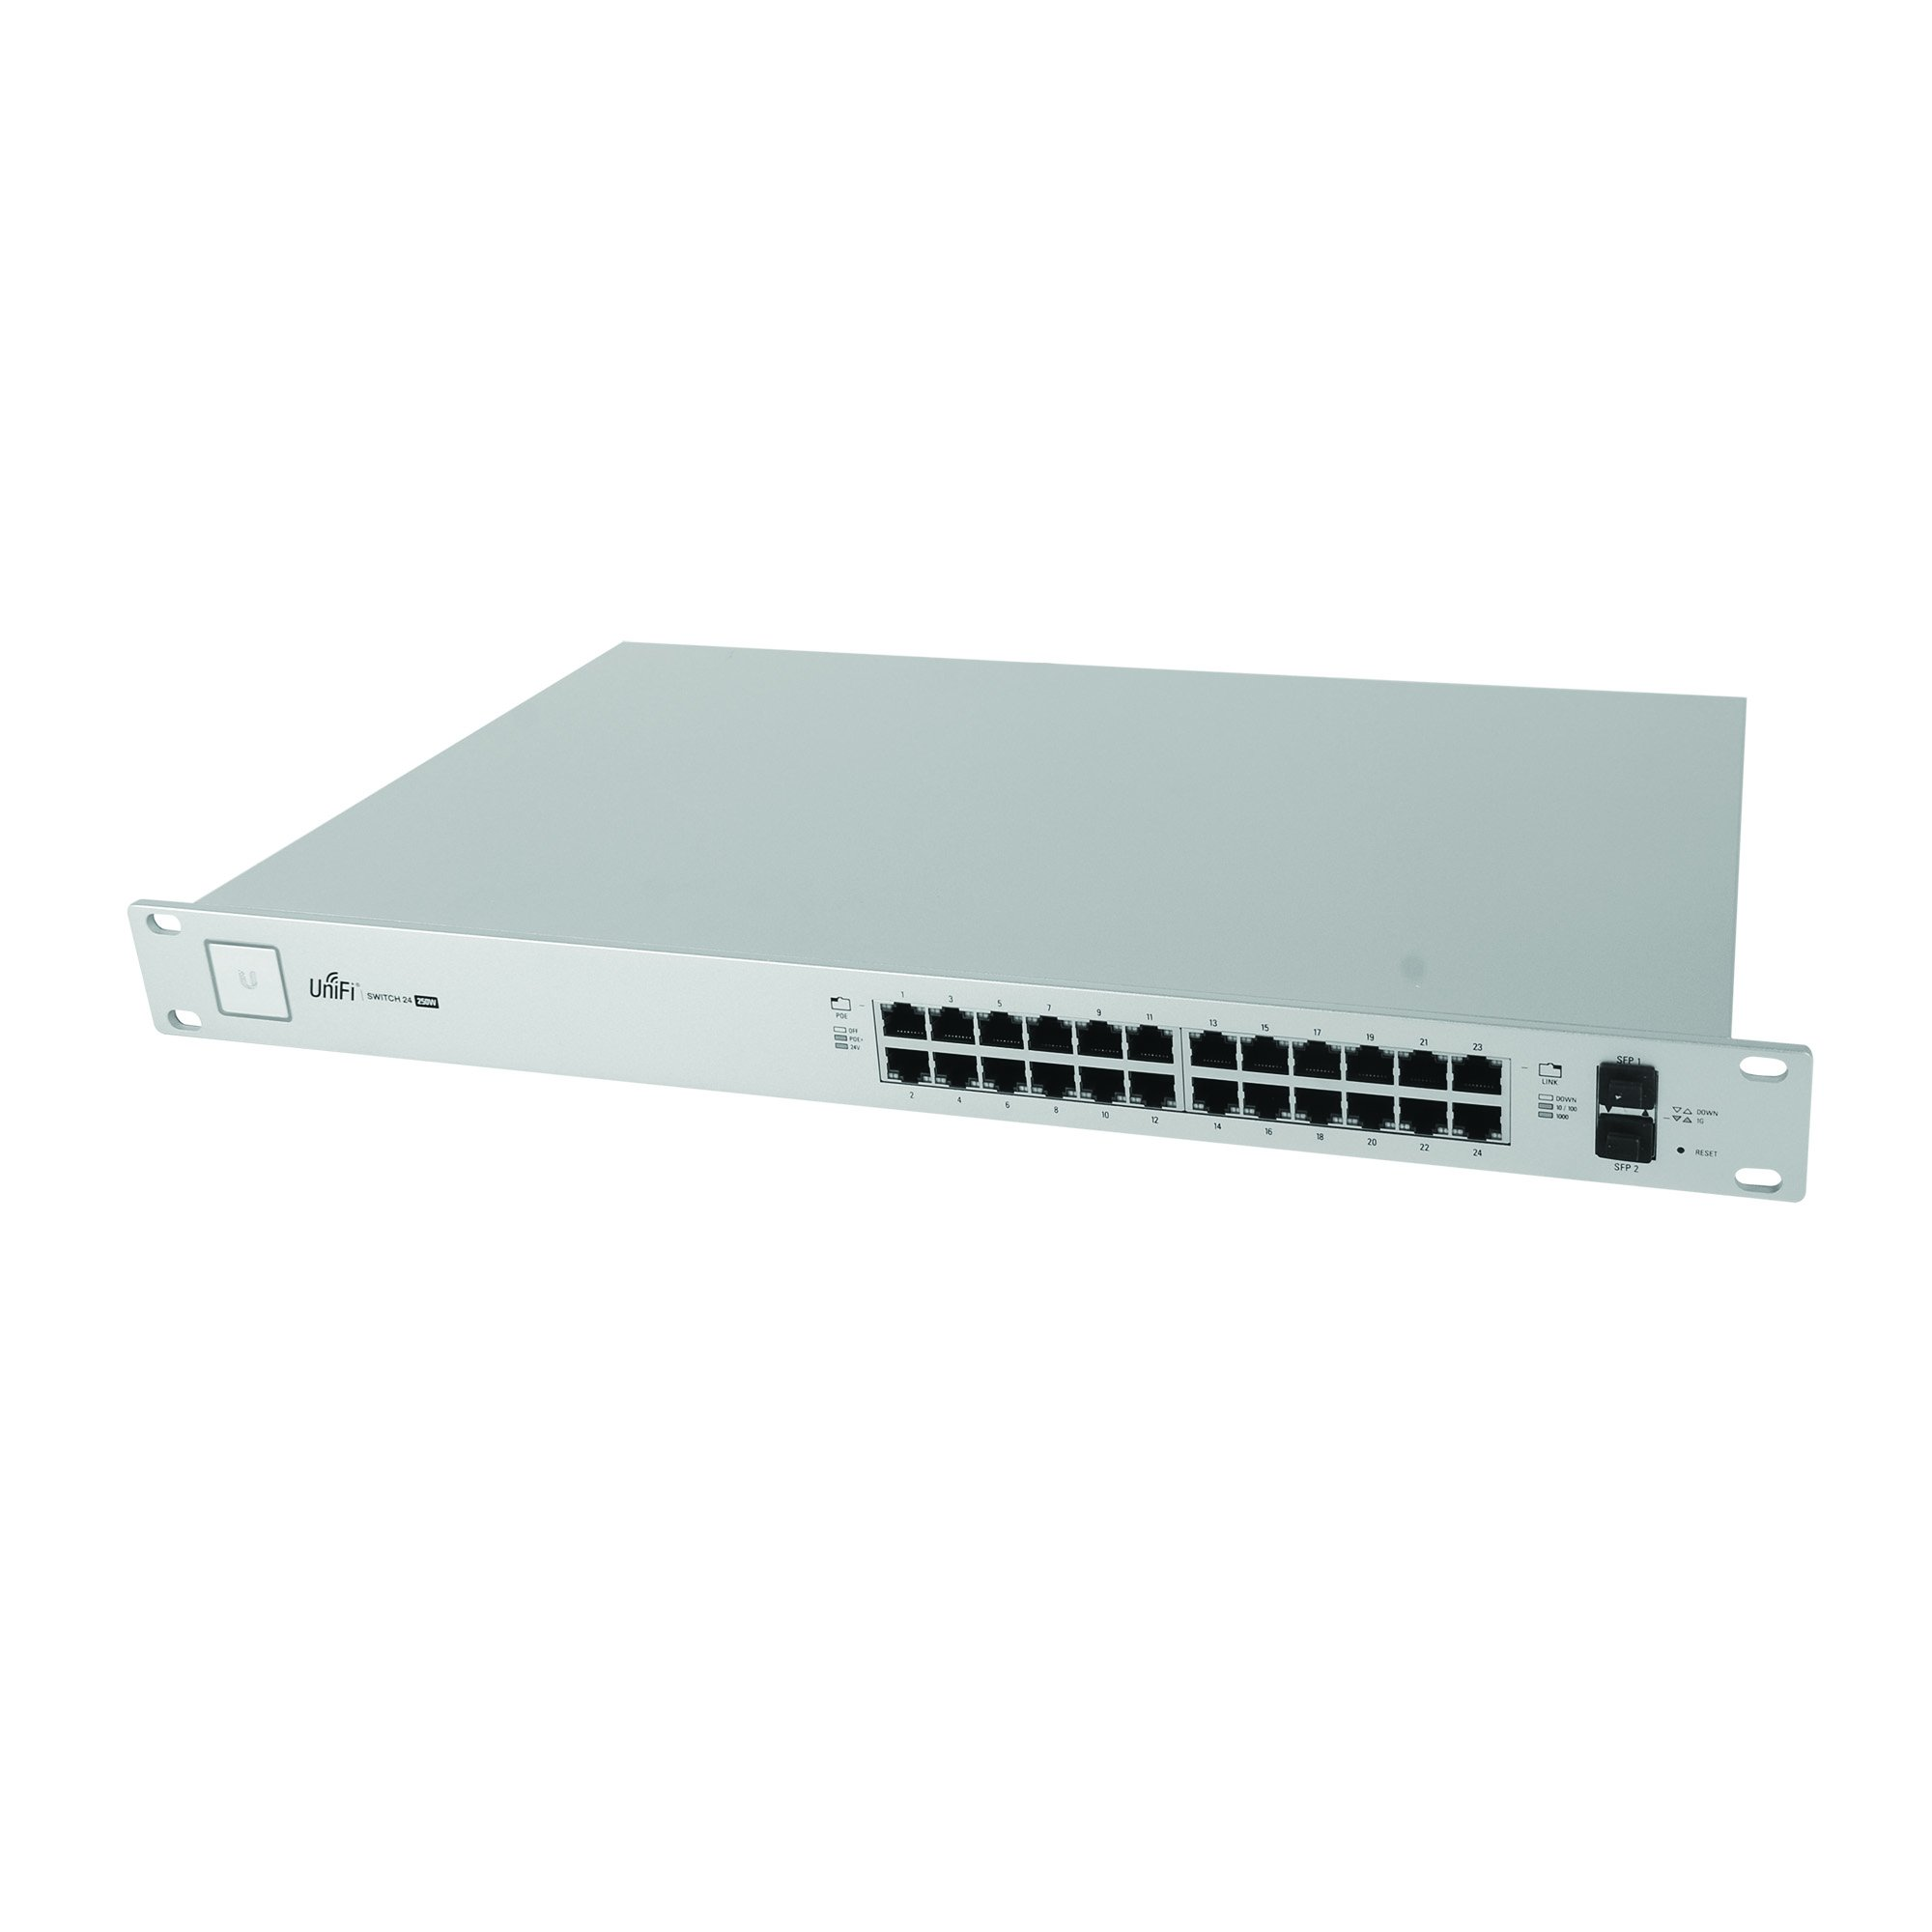 Ubiquiti UniFi Switch - 24 Ports Managed (US-24-250W) by Ubiquiti Networks